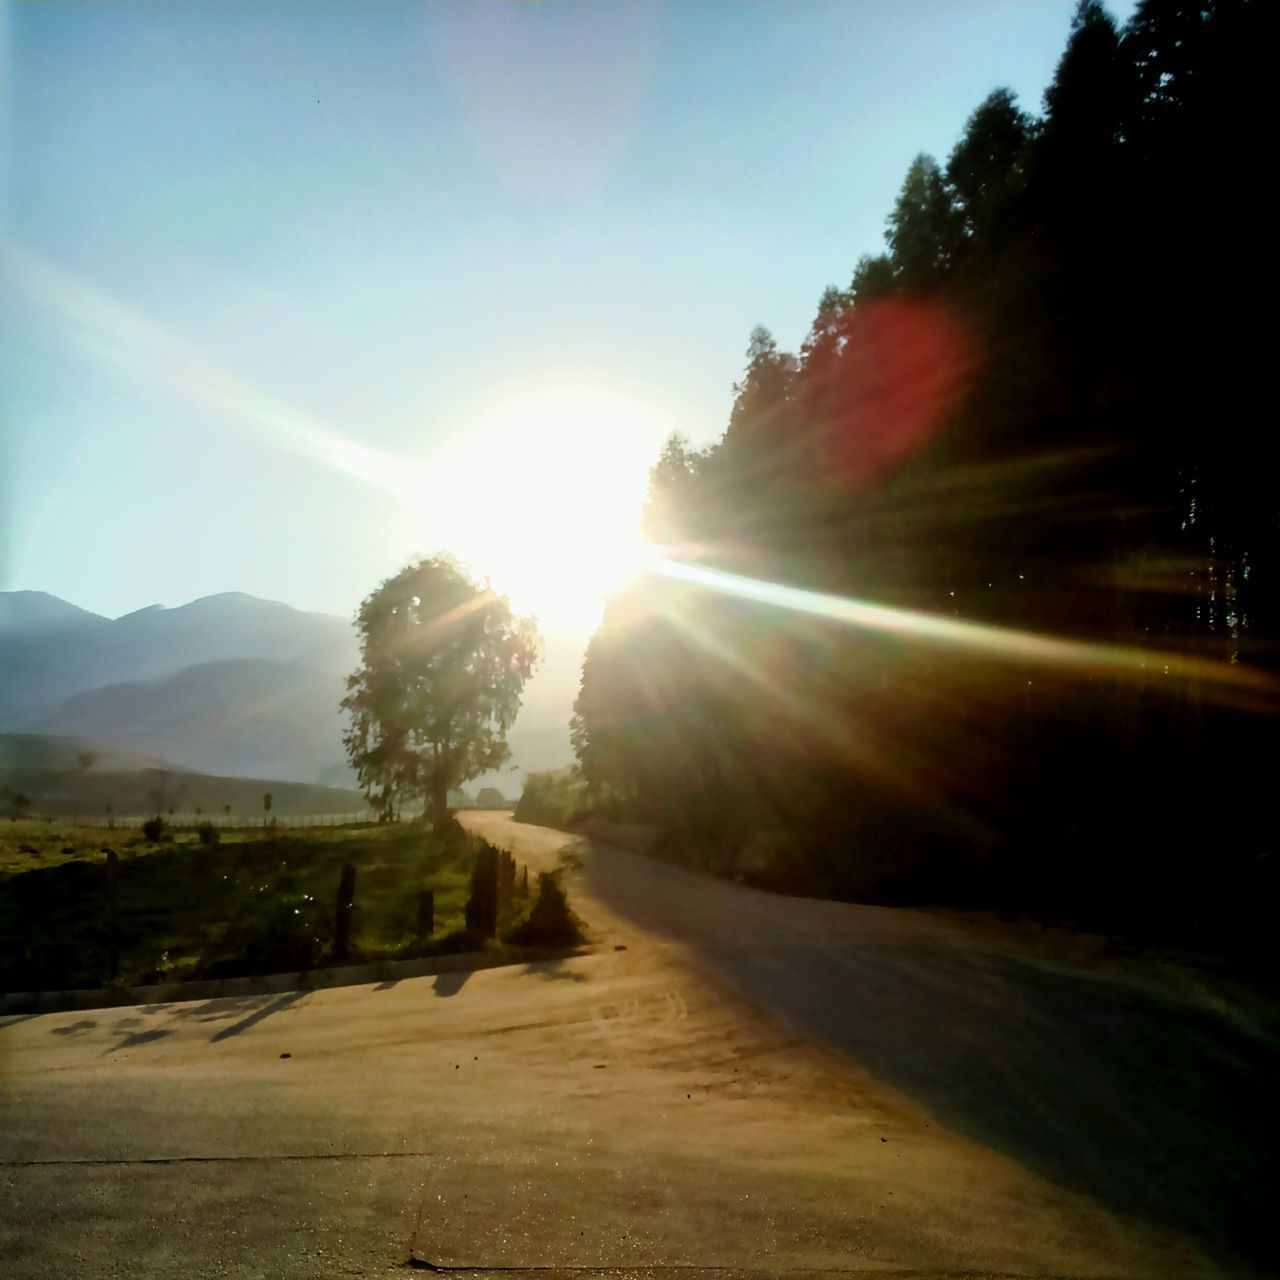 sunbeam, sun, lens flare, sunlight, nature, tree, tranquility, sky, sunset, road, scenics, outdoors, no people, tranquil scene, beauty in nature, landscape, day